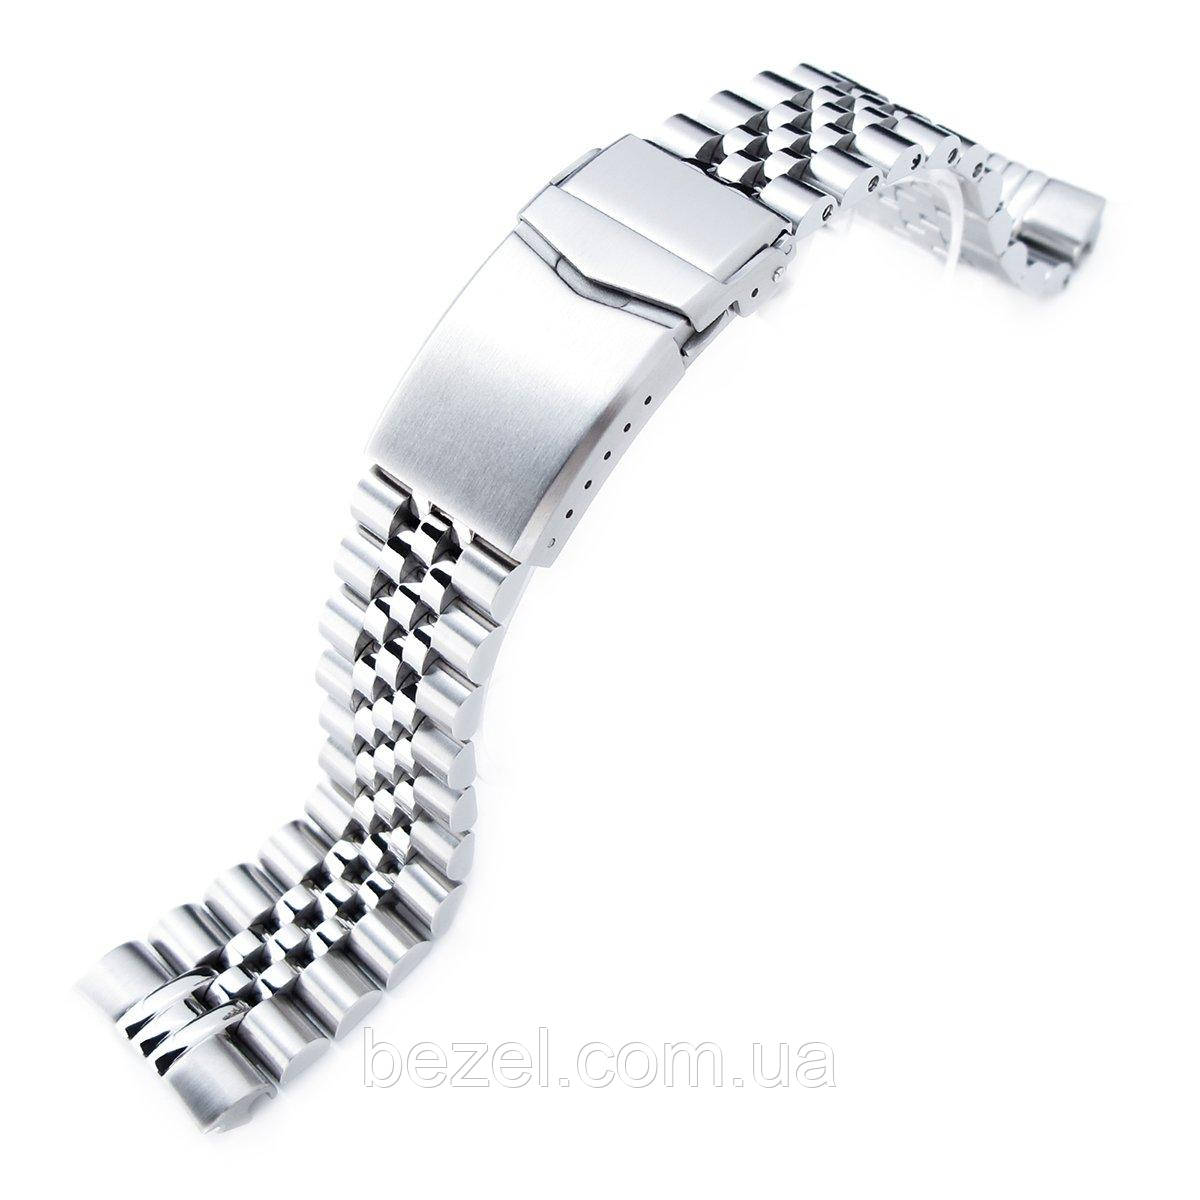 22mm Super 3D Jubilee 316L Stainless Steel Watch Bracelet for Seiko New Turtles SRP777 & PADI SRPA21, V-Clasp Brushed